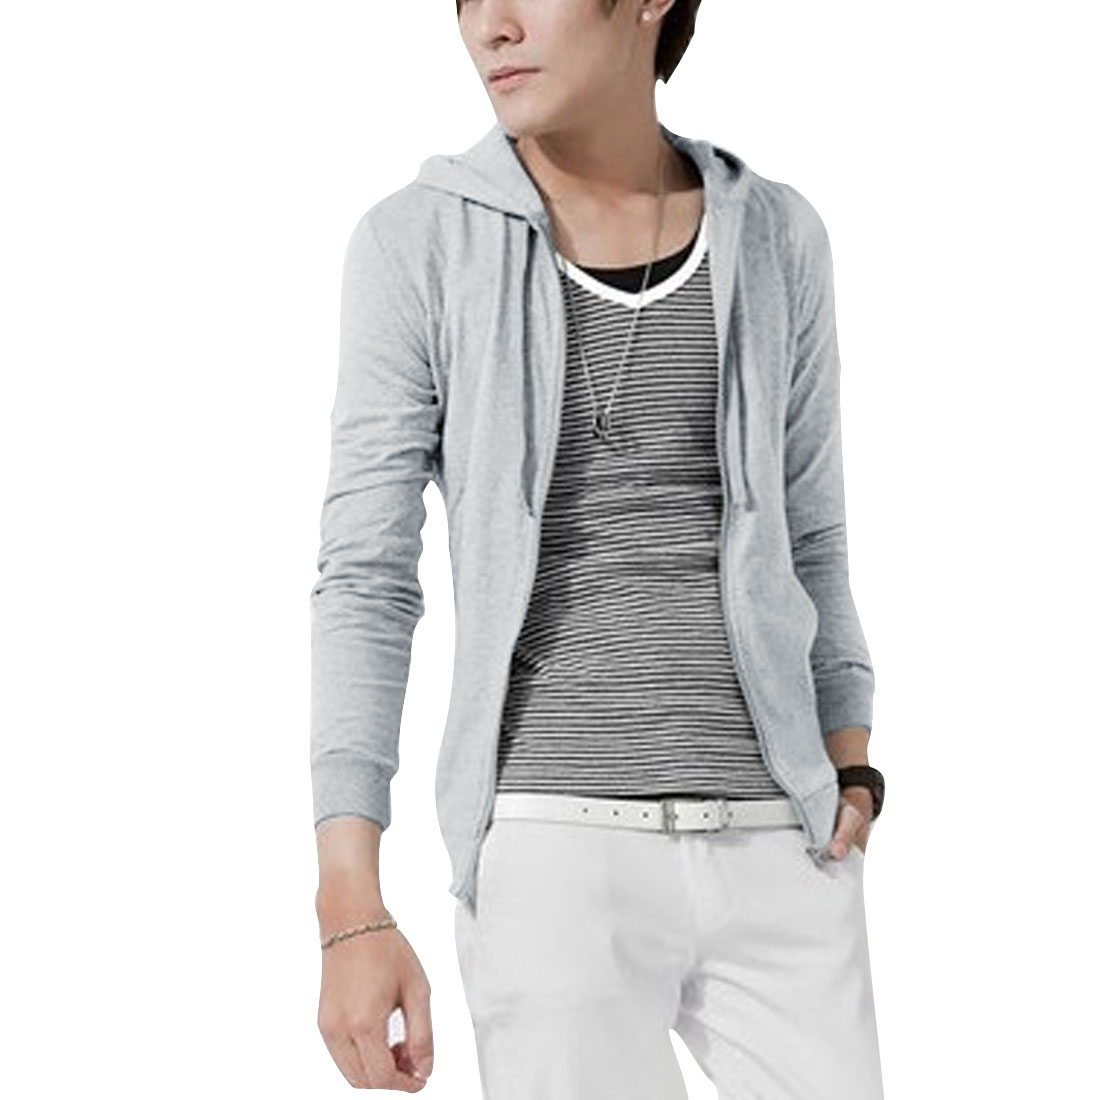 M Light Grey Skinny Fit Front Pocket Solid Color Style Fashion Men Hoodies